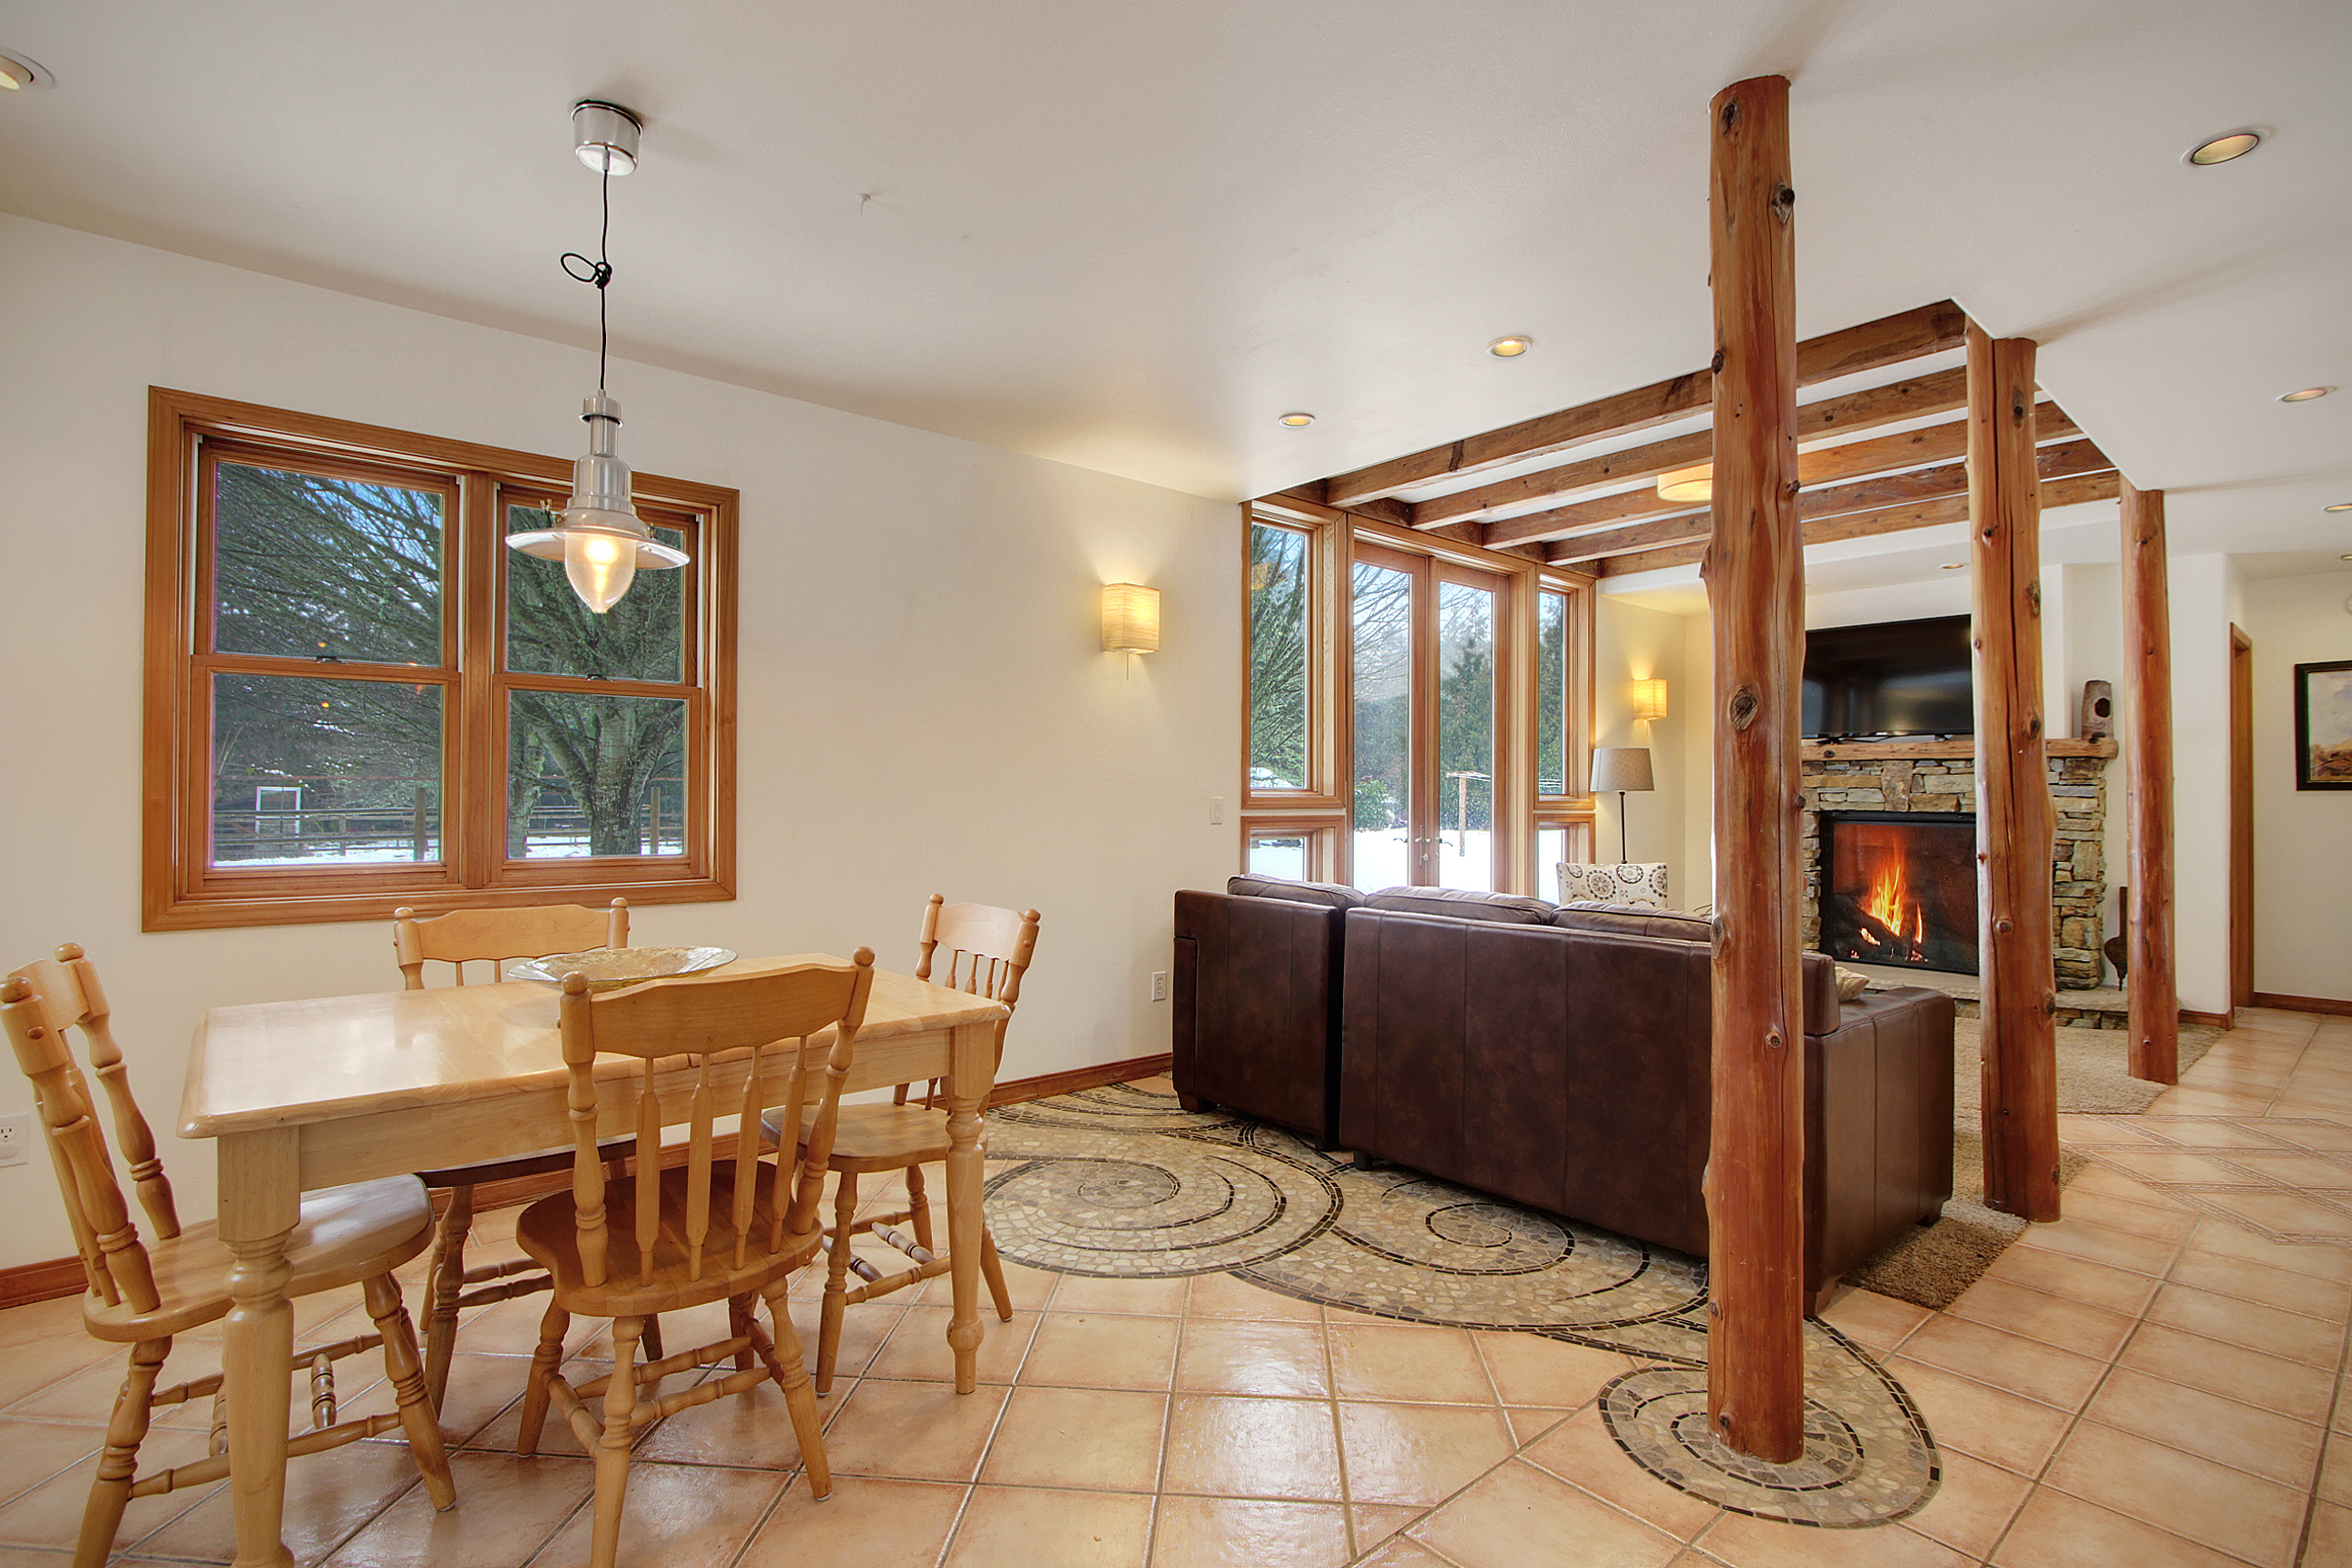 An open living room and dining area with exposed beams and a tile wave motif on the floor